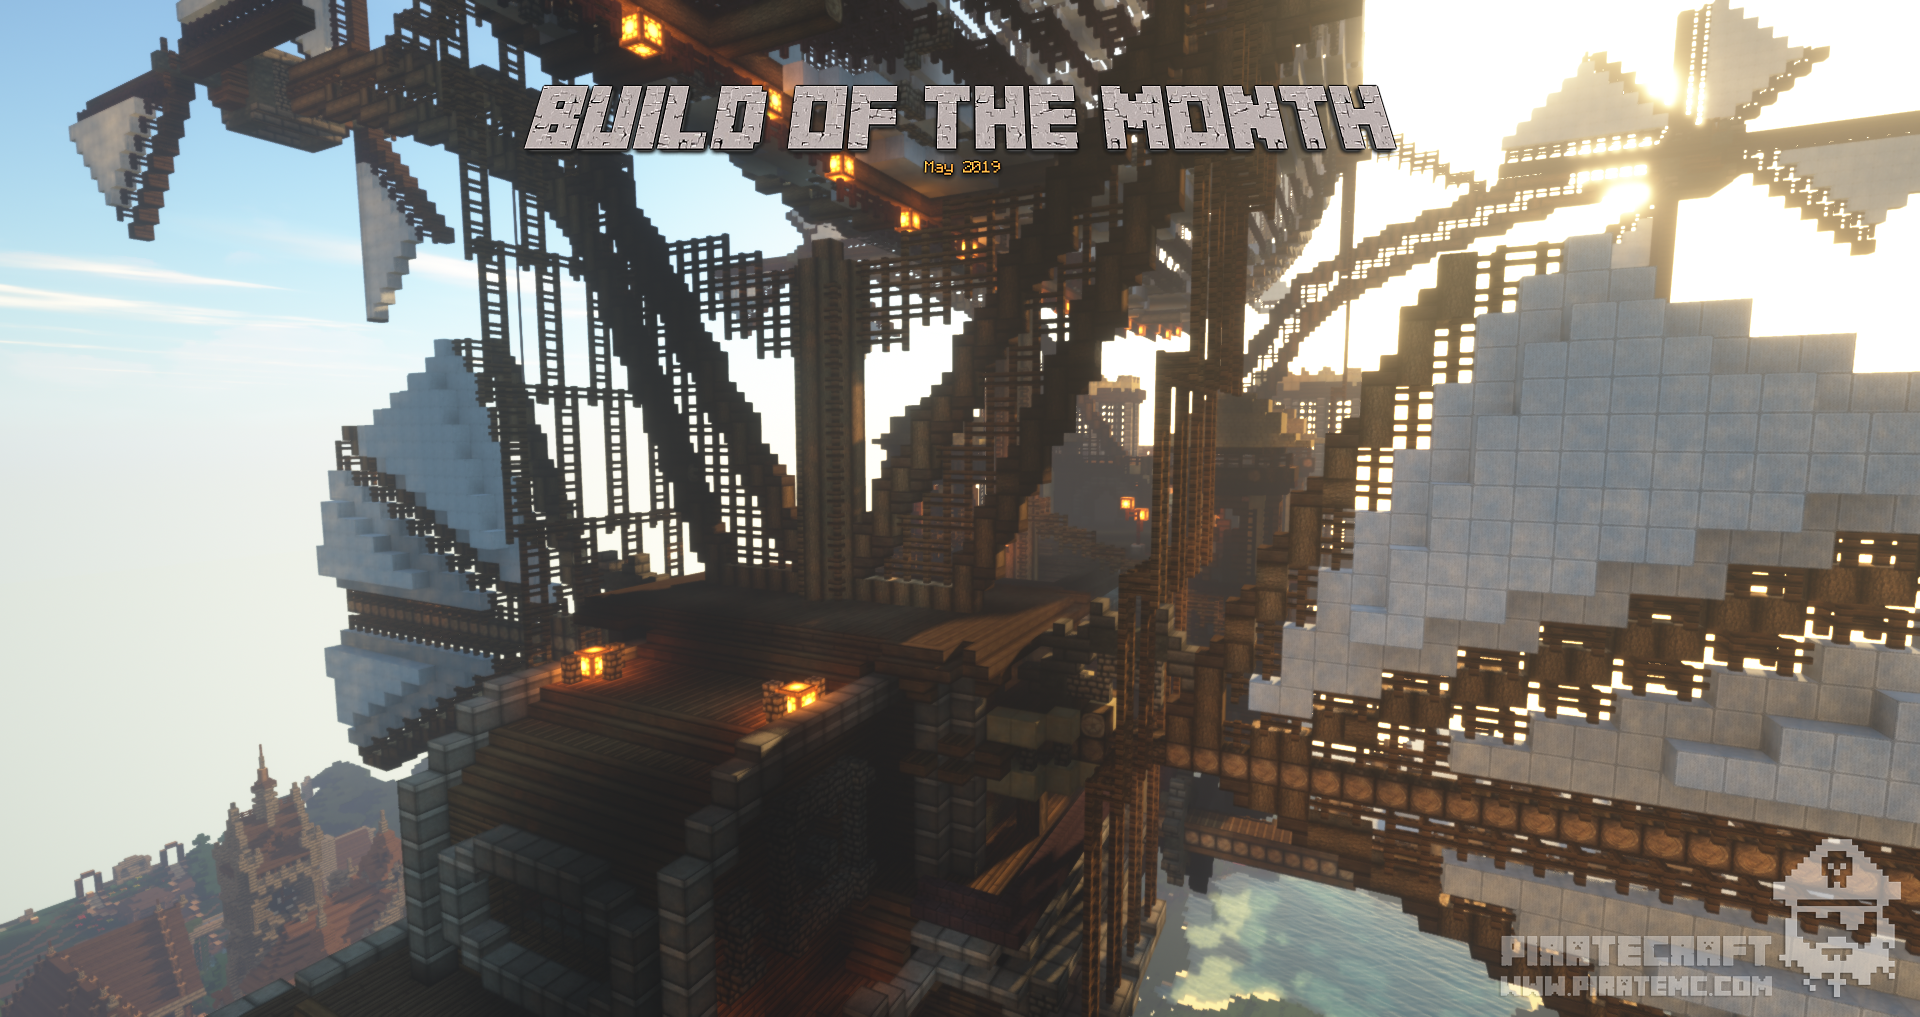 May 2019 Build of the Month Competition - PirateCraft